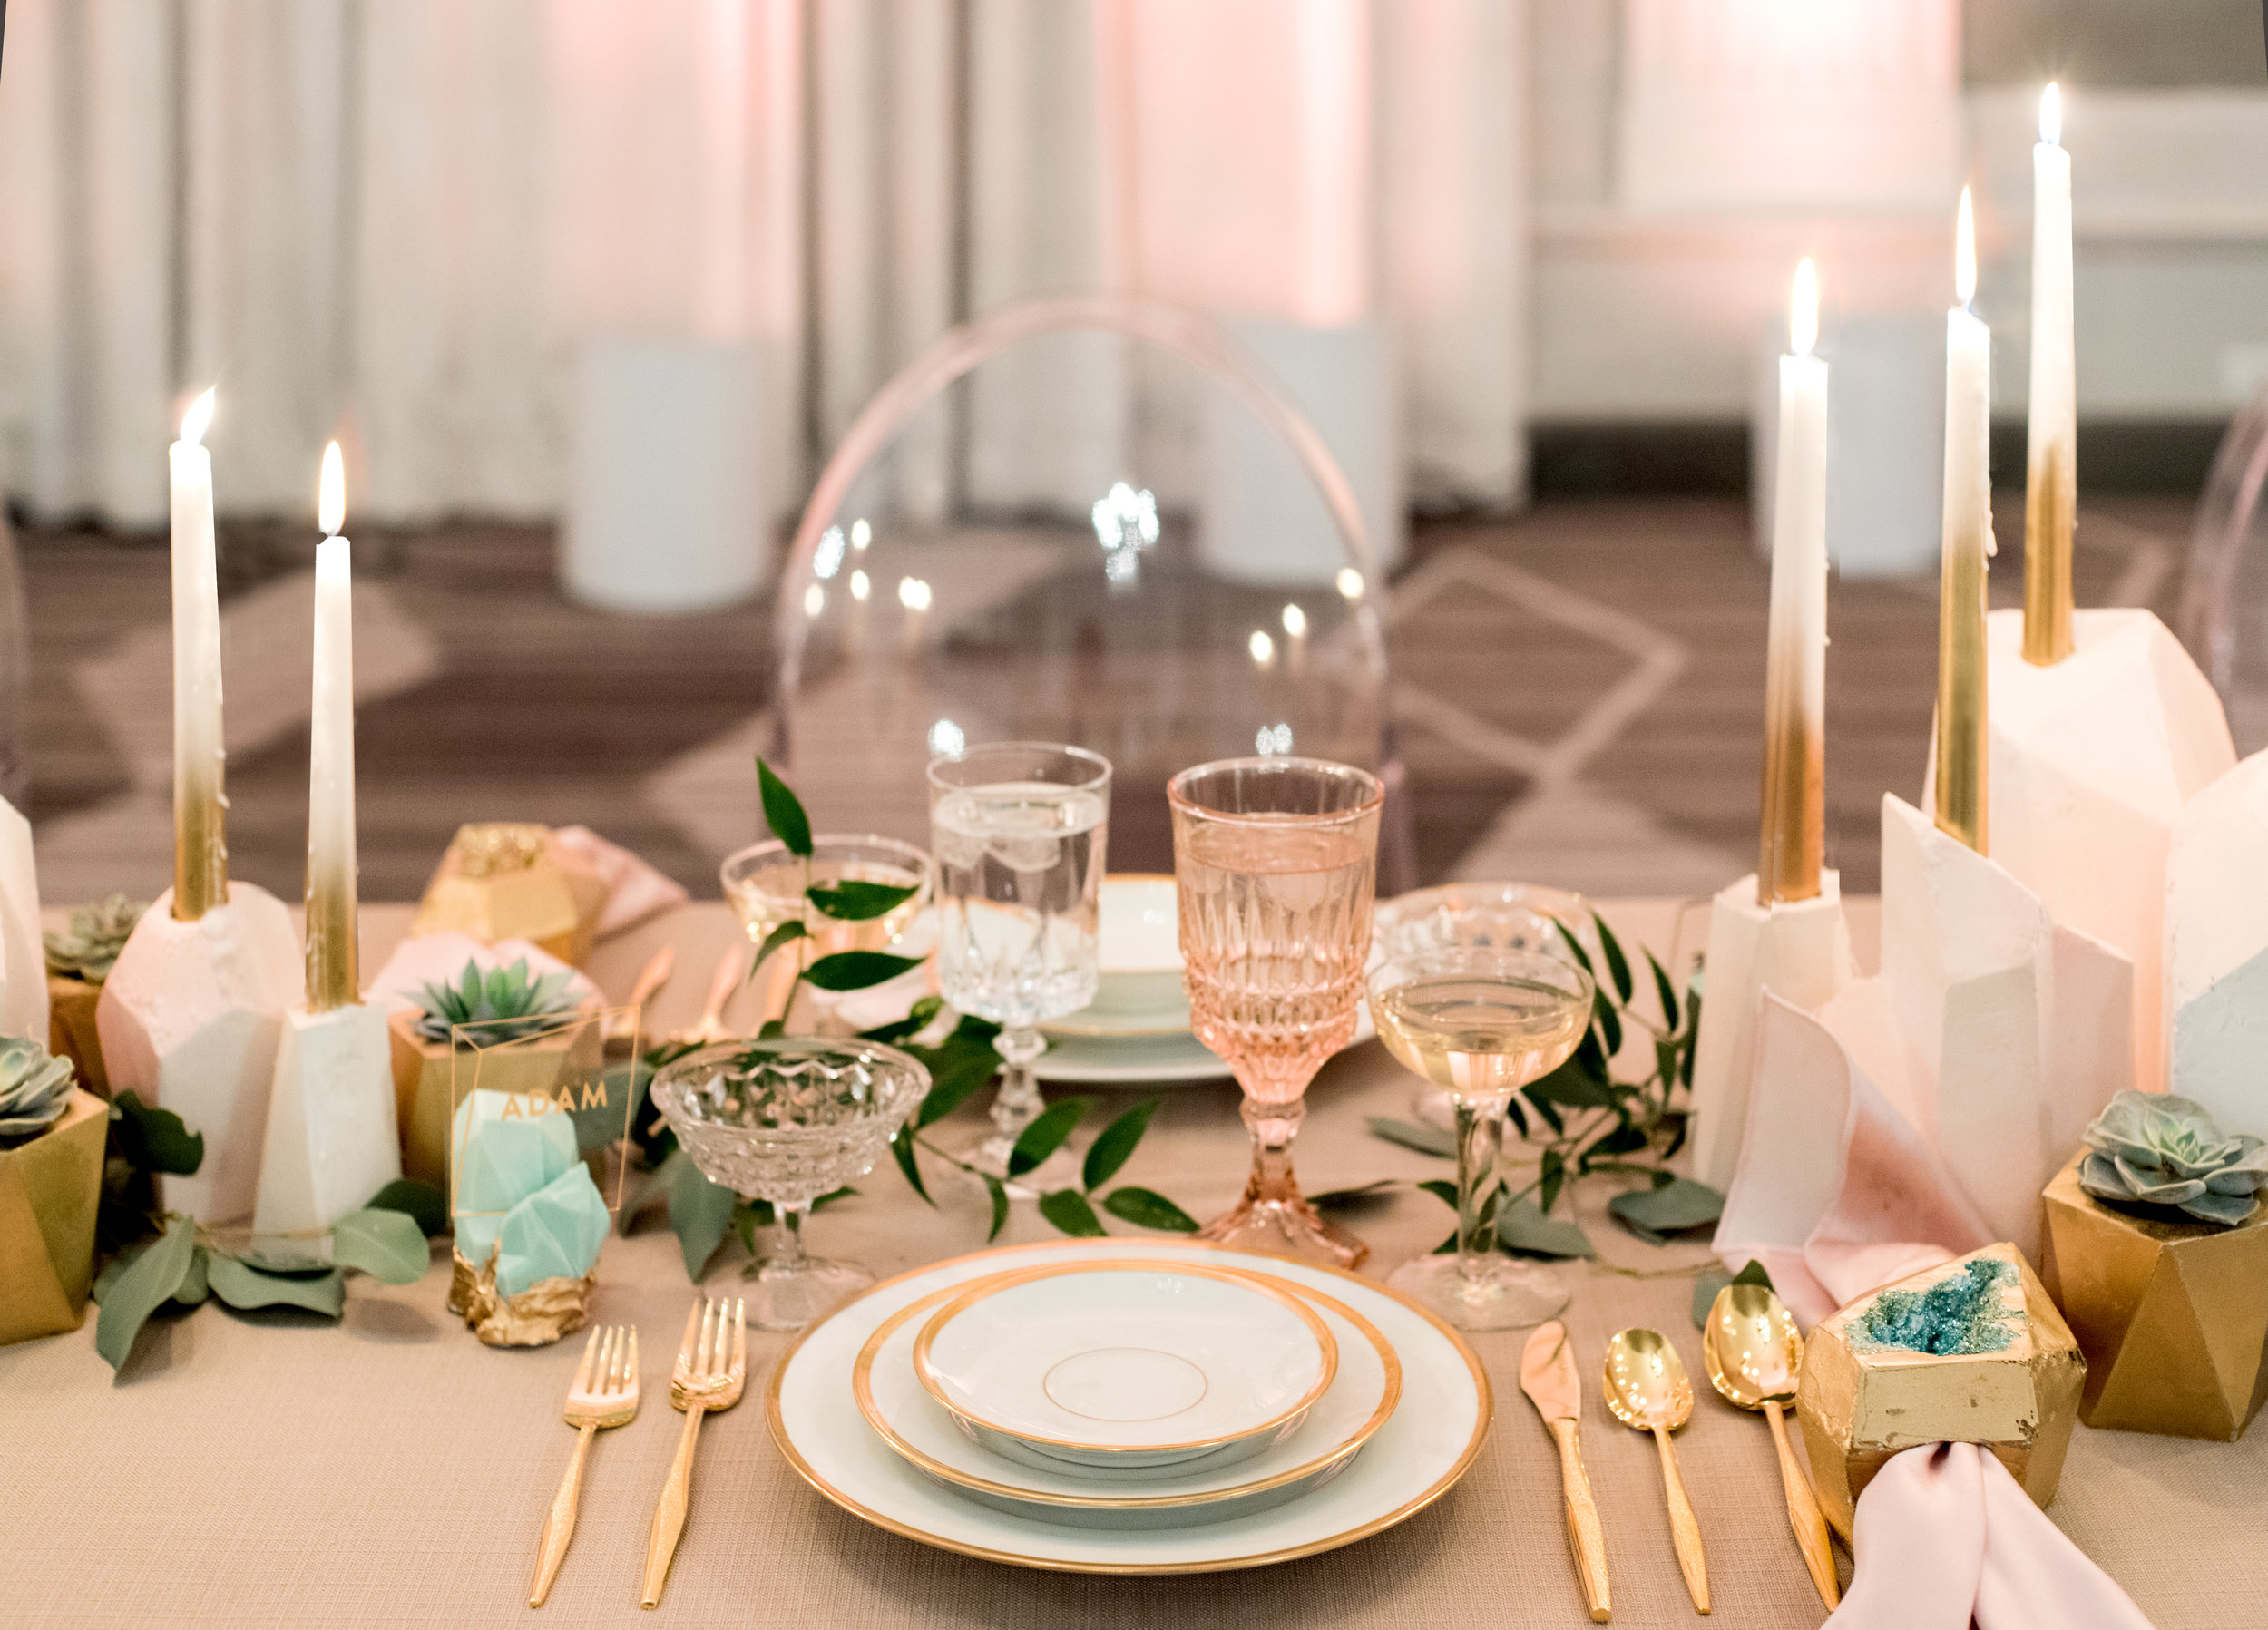 Sugar & Gold | Geode Wedding Inspiration Shoot | Blush Faceted Plaster Candle Centerpiece with Gold and Copper Ombrè Candlesticks